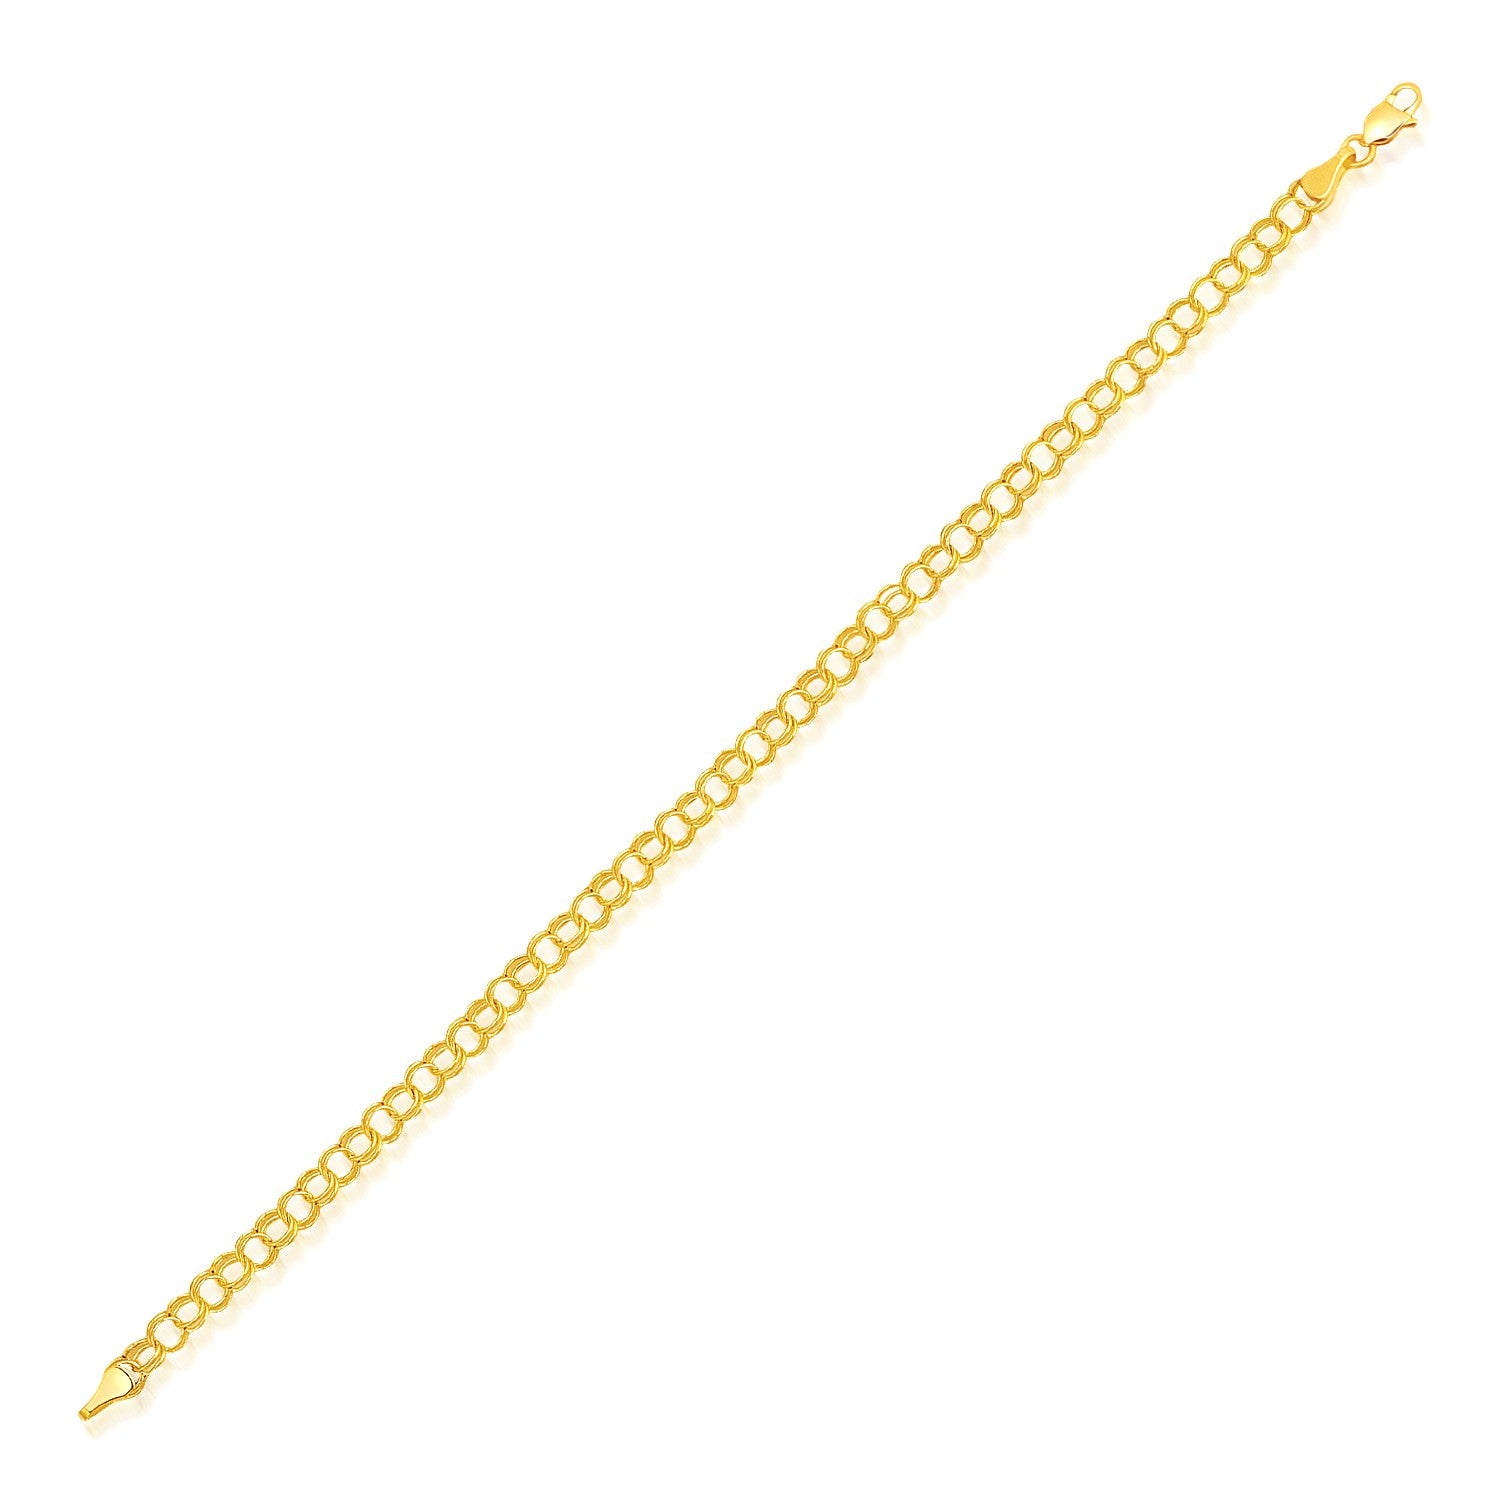 4.0 mm 14k Yellow Gold Lite Charm Bracelet